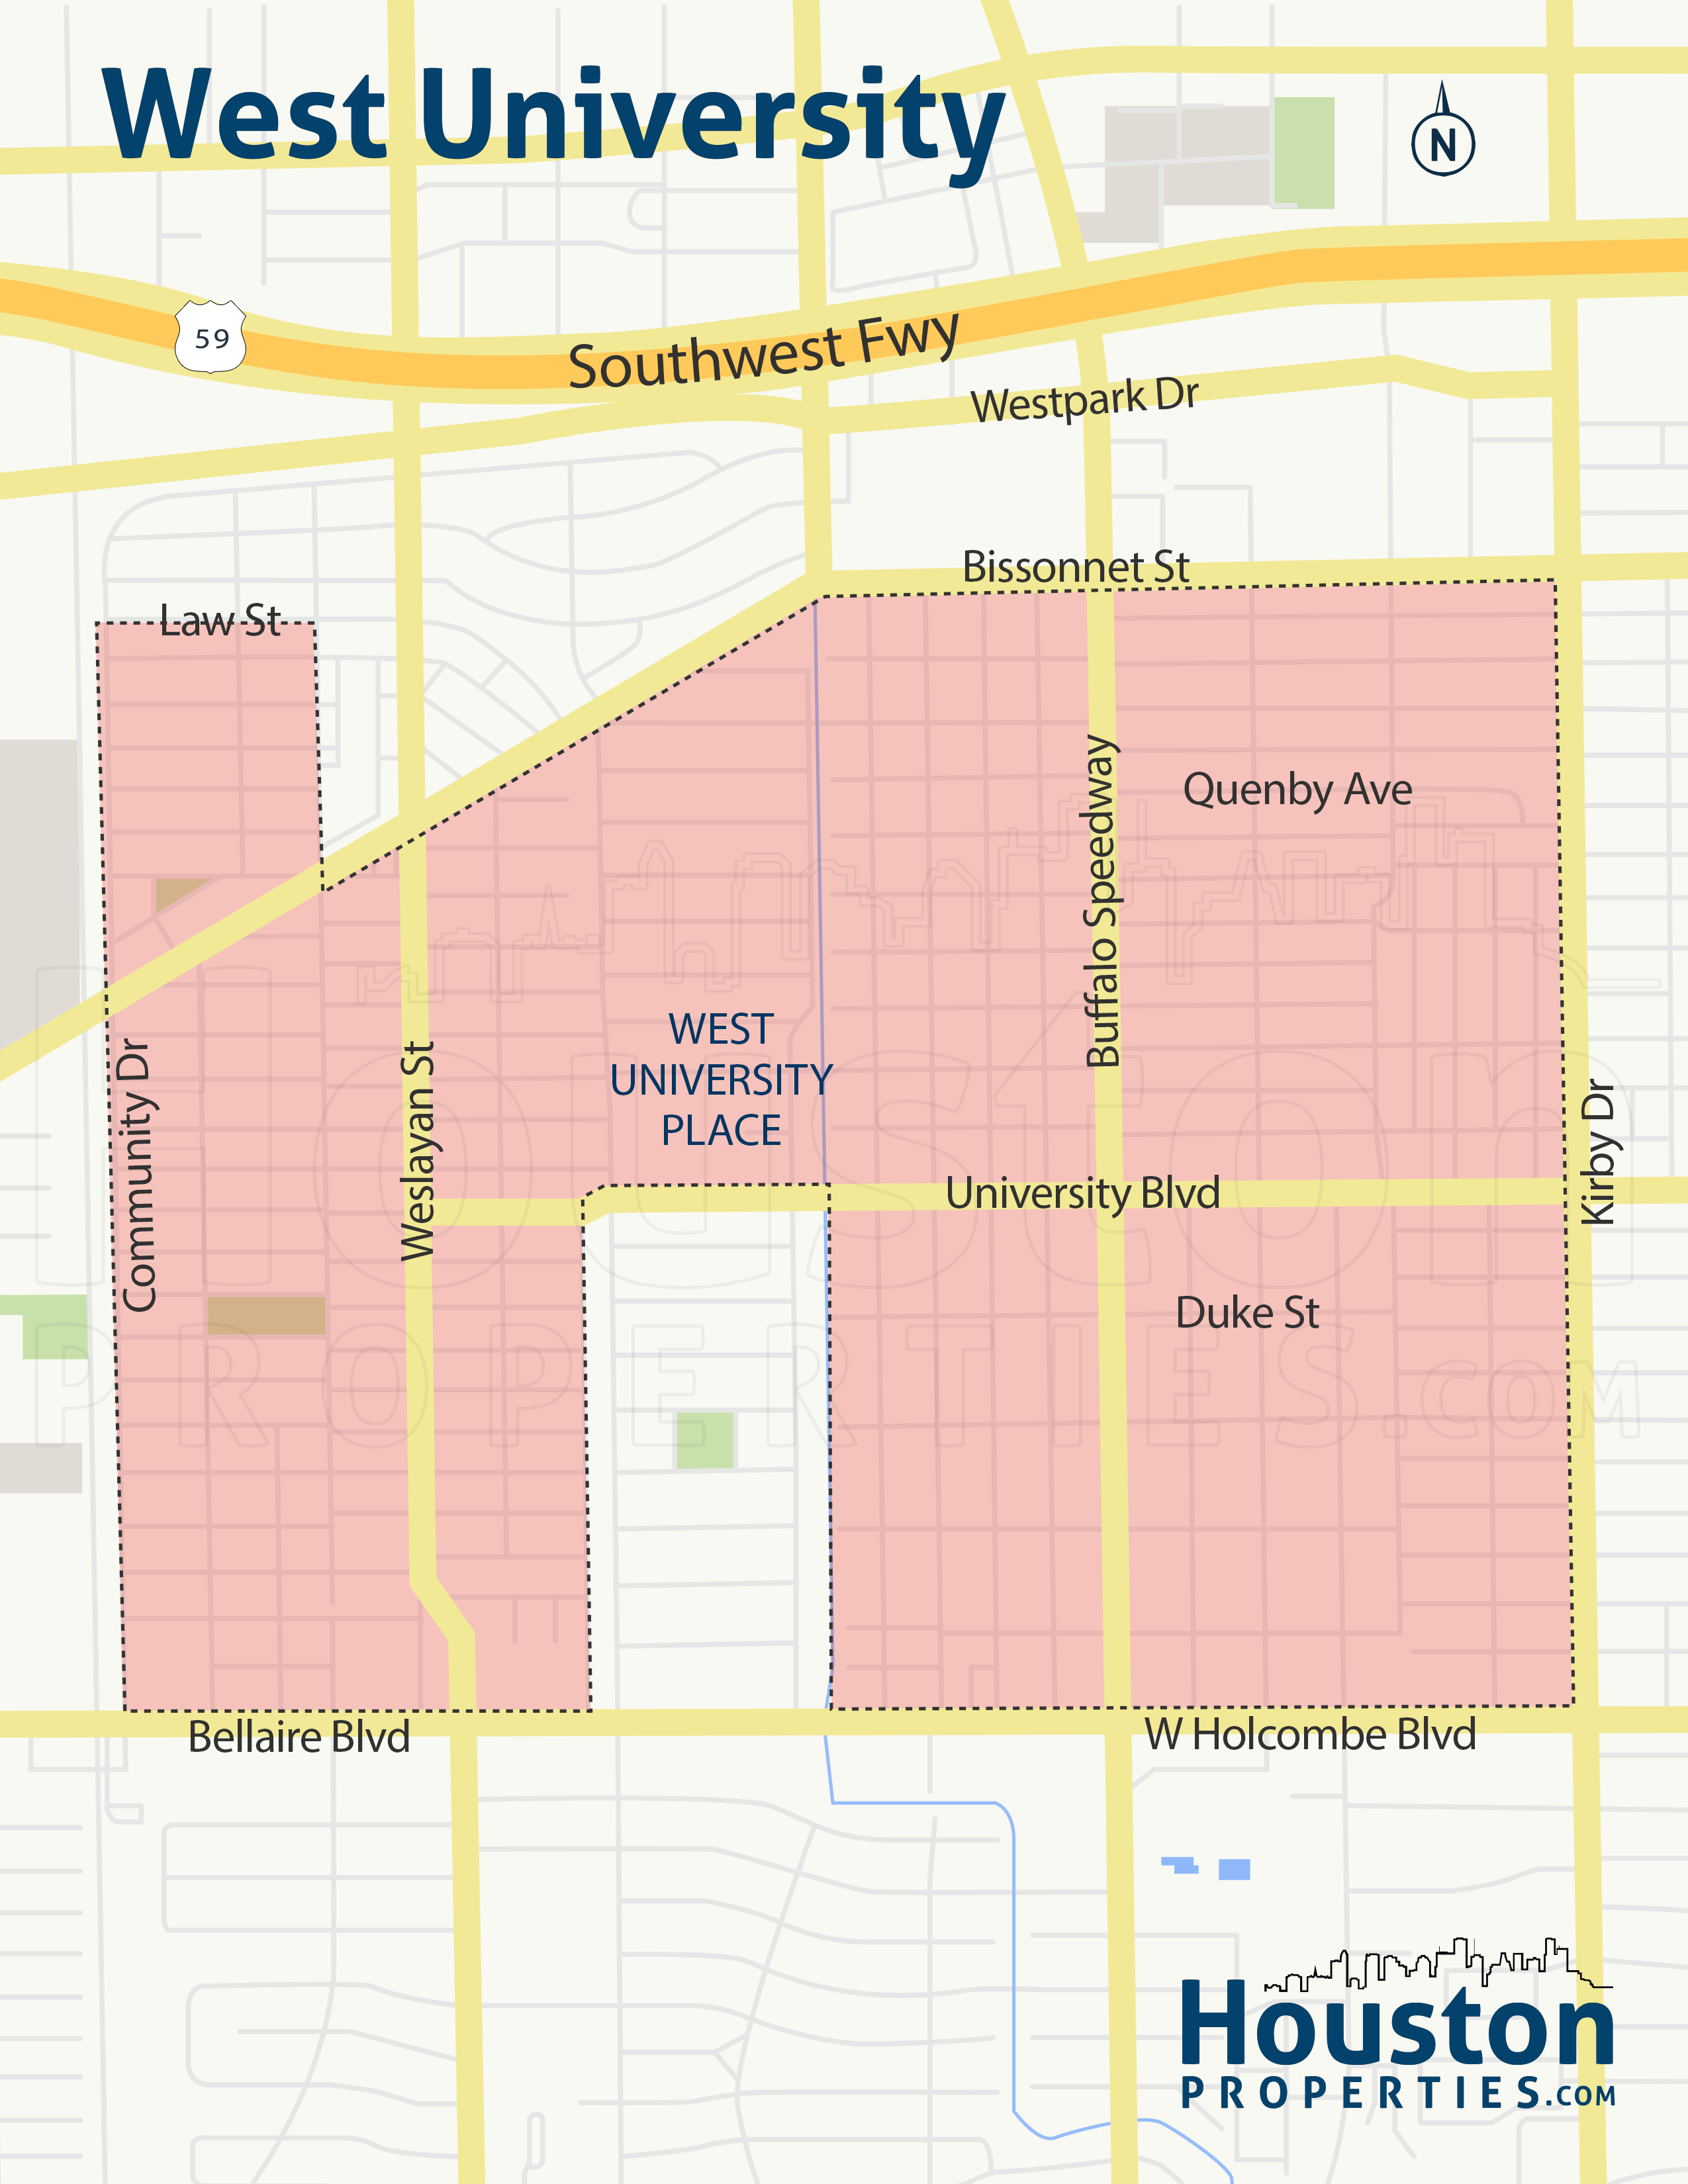 map of west university homes in houston